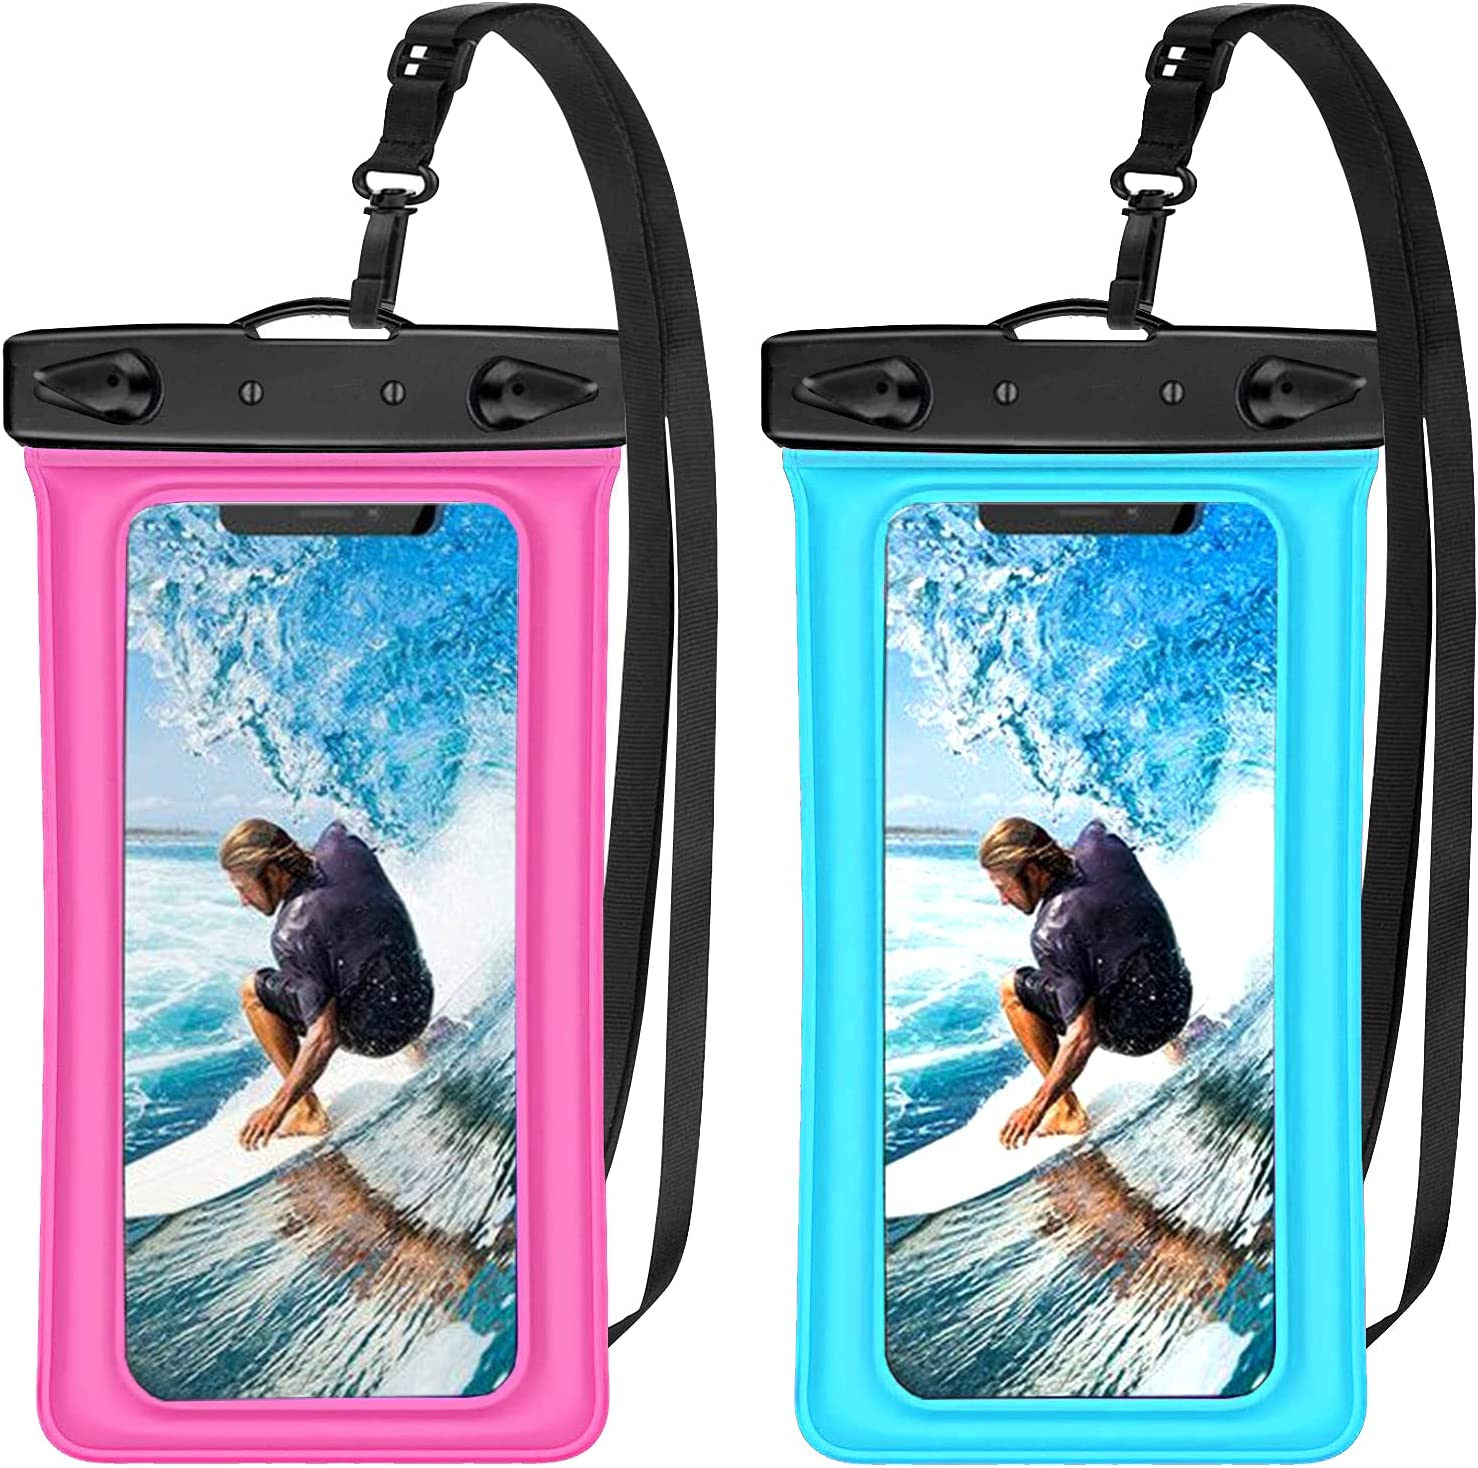 """Annymall Waterproof Phone Pouch 2 Pack, Universal Waterproof Cellphone Dry Bag with Lanyard Underwater Case for iPhone 12 Pro 11 Pro Max XR Xs Max 8/7 SE,Galaxy S20 FE S9 S7 UP to 7"""" (Blue+Pink)"""